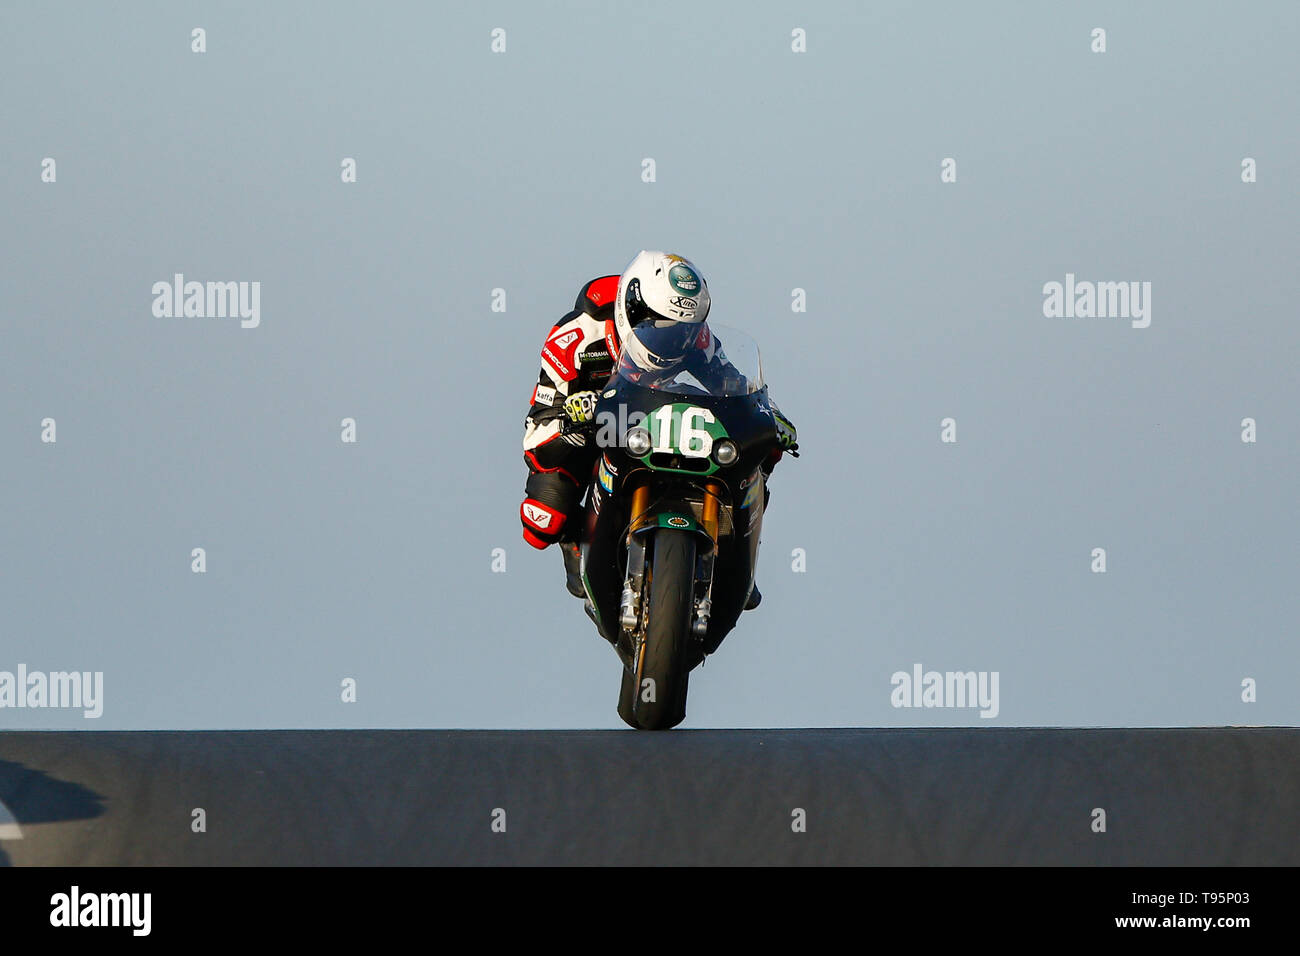 Portrush, Northern Ireland. 16th May, 2019. International North West 200 Motorcycle road racing, Thursday practice and evening racing; Italy's Stefano Bonetti wins the SuperTwin race on the Speed Motor BMW Credit: Action Plus Sports/Alamy Live News - Stock Image